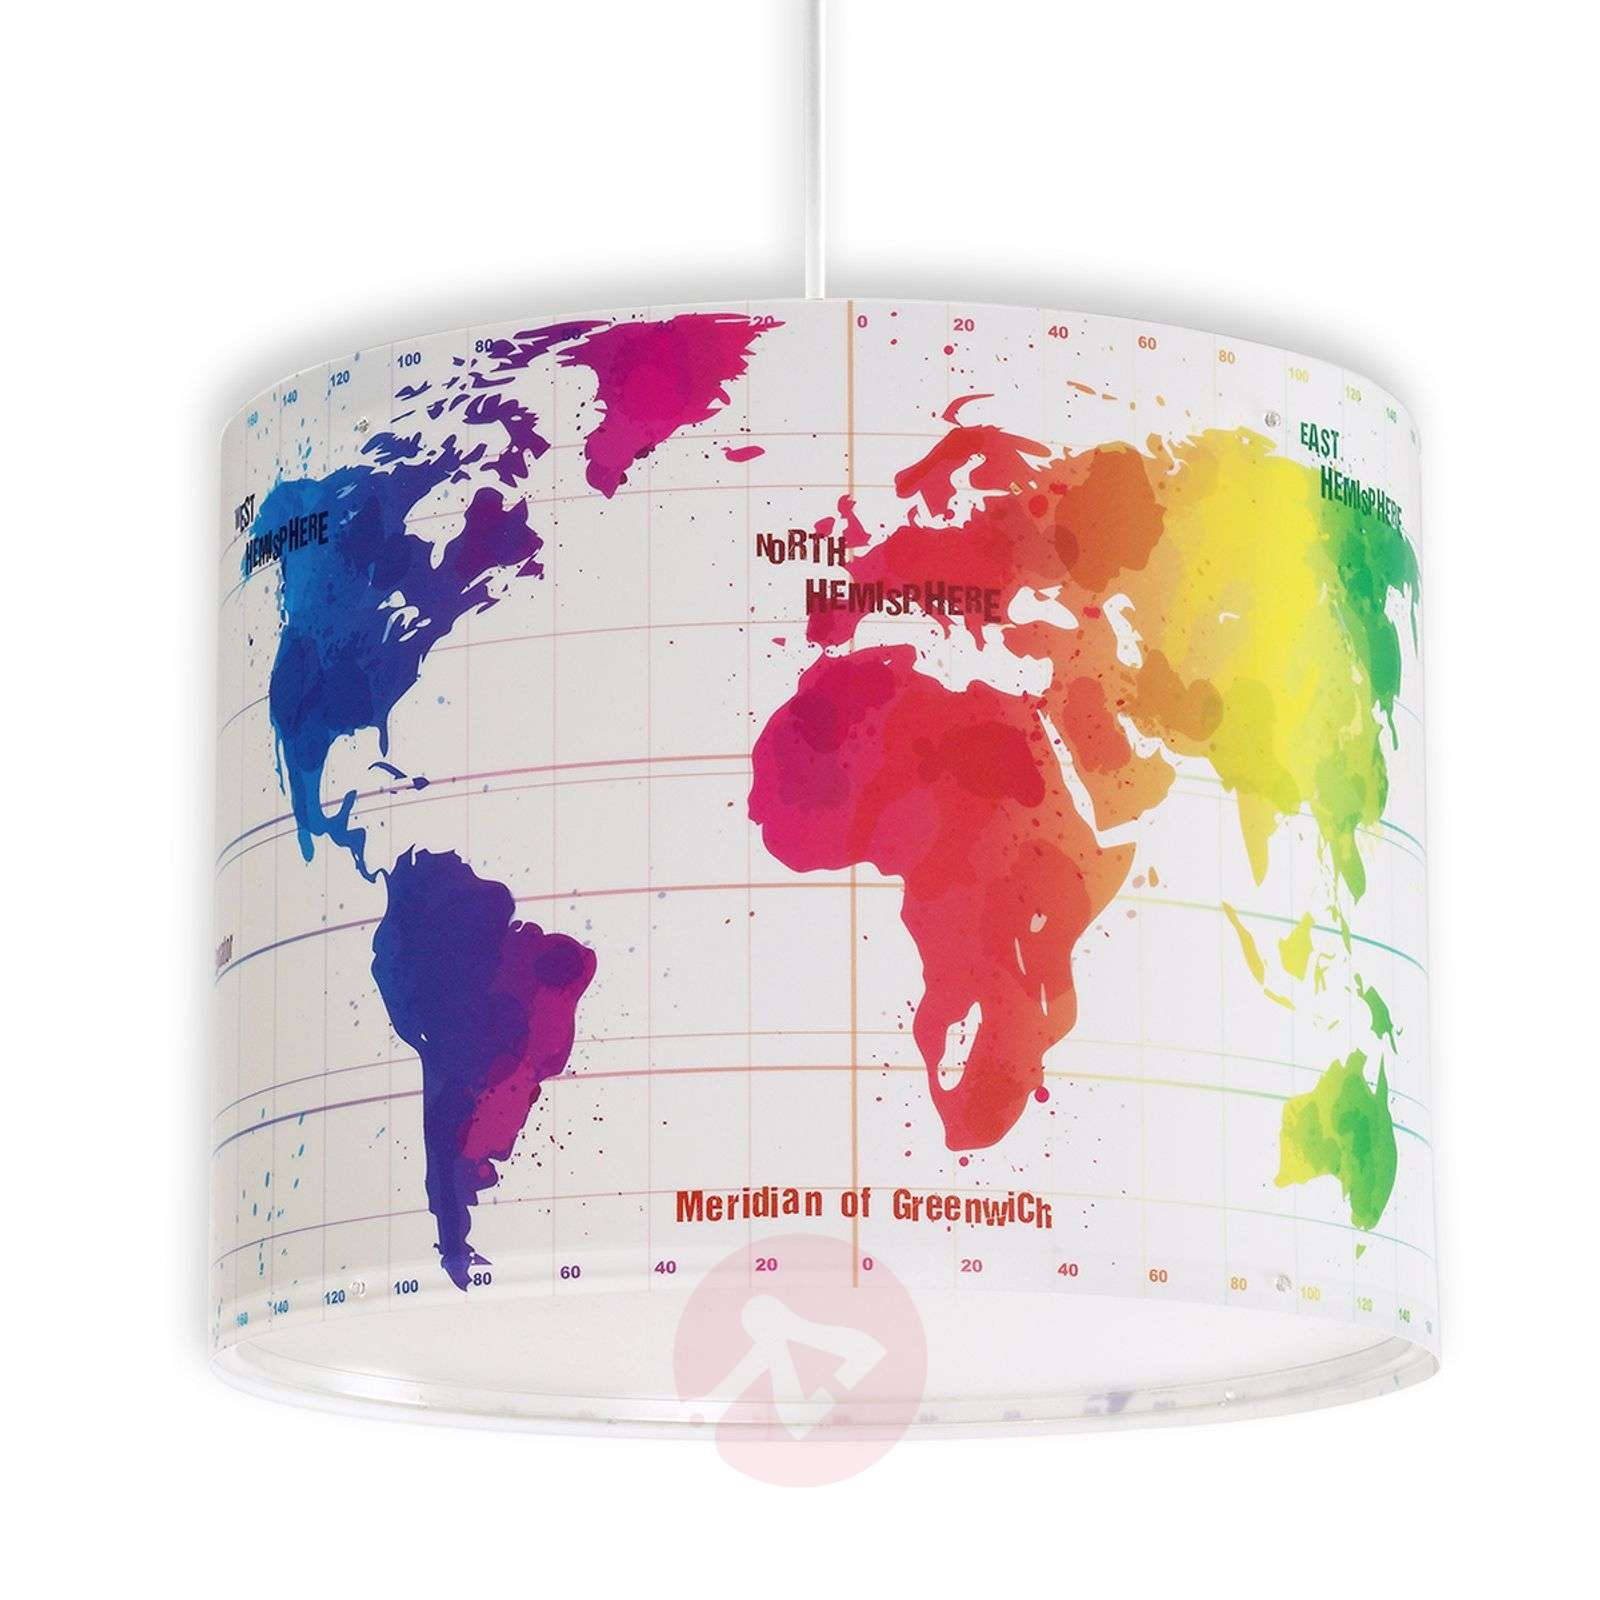 Childrens room hanging light map with world map lights childrens room hanging light map with world map 2507315 01 gumiabroncs Choice Image